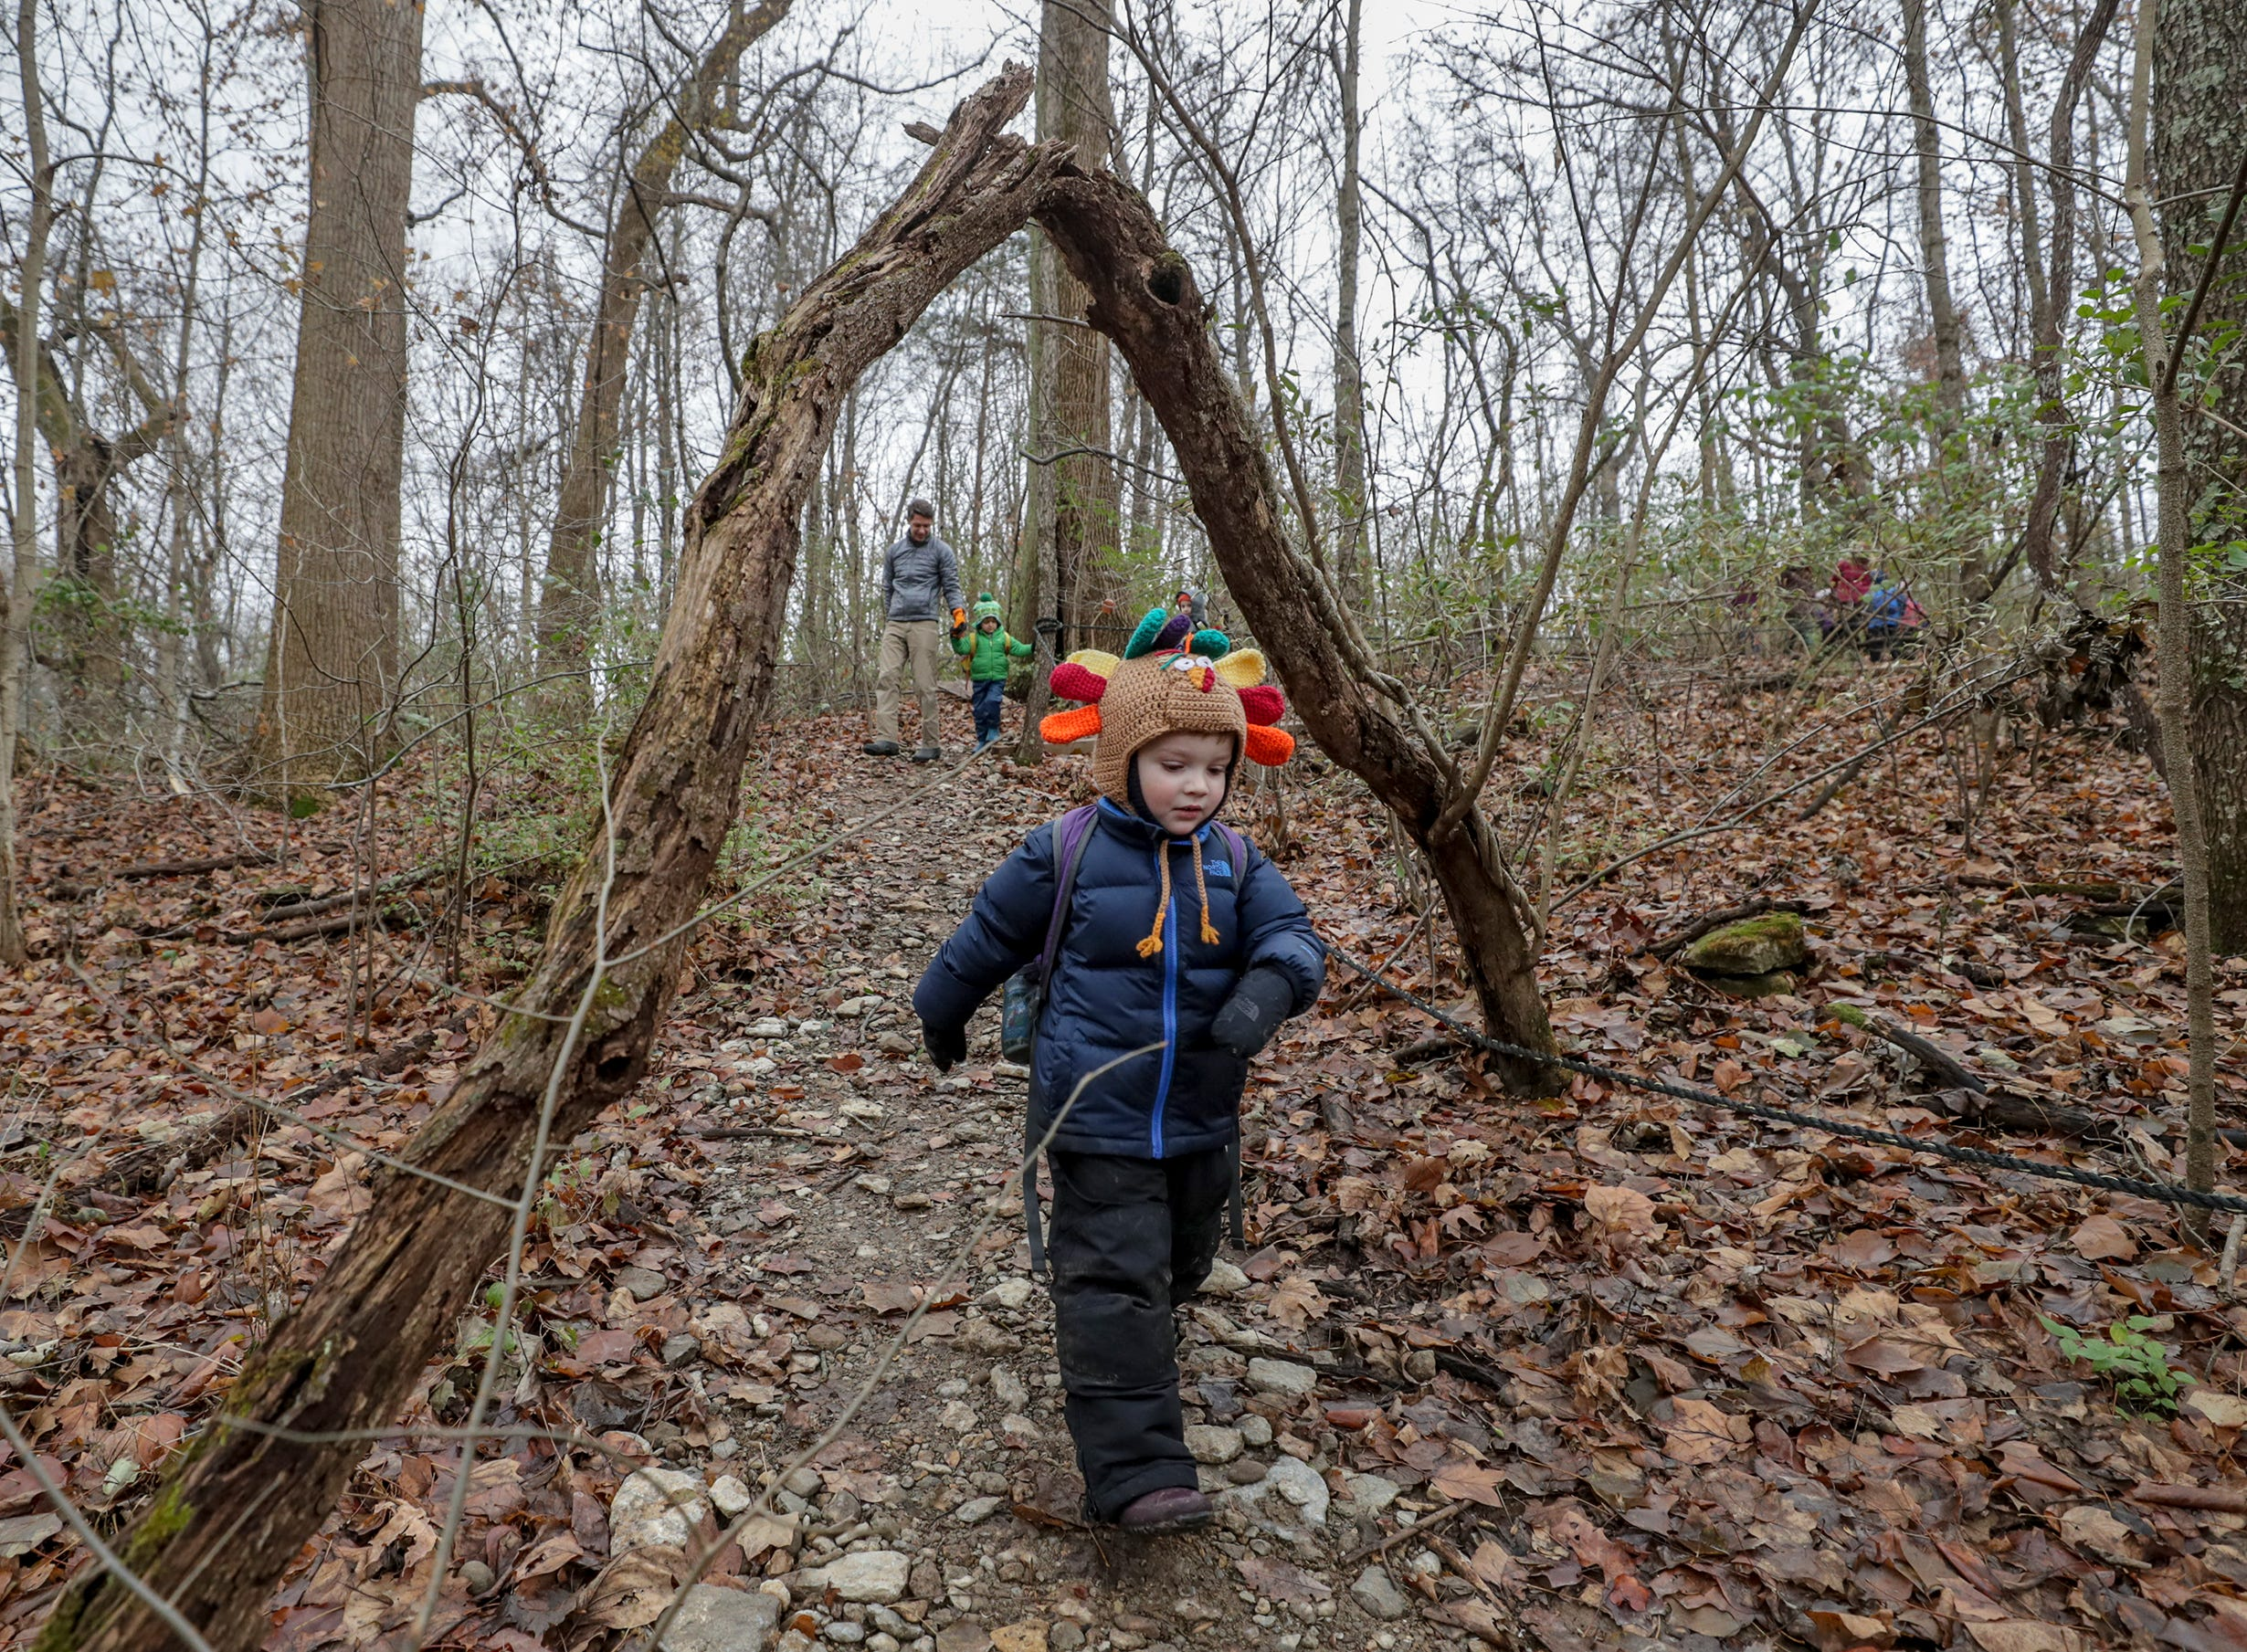 Lincoln Oakes walks under a tree limb that forms a natural arch for the entrance for Thrive Forest School.November 19, 2018